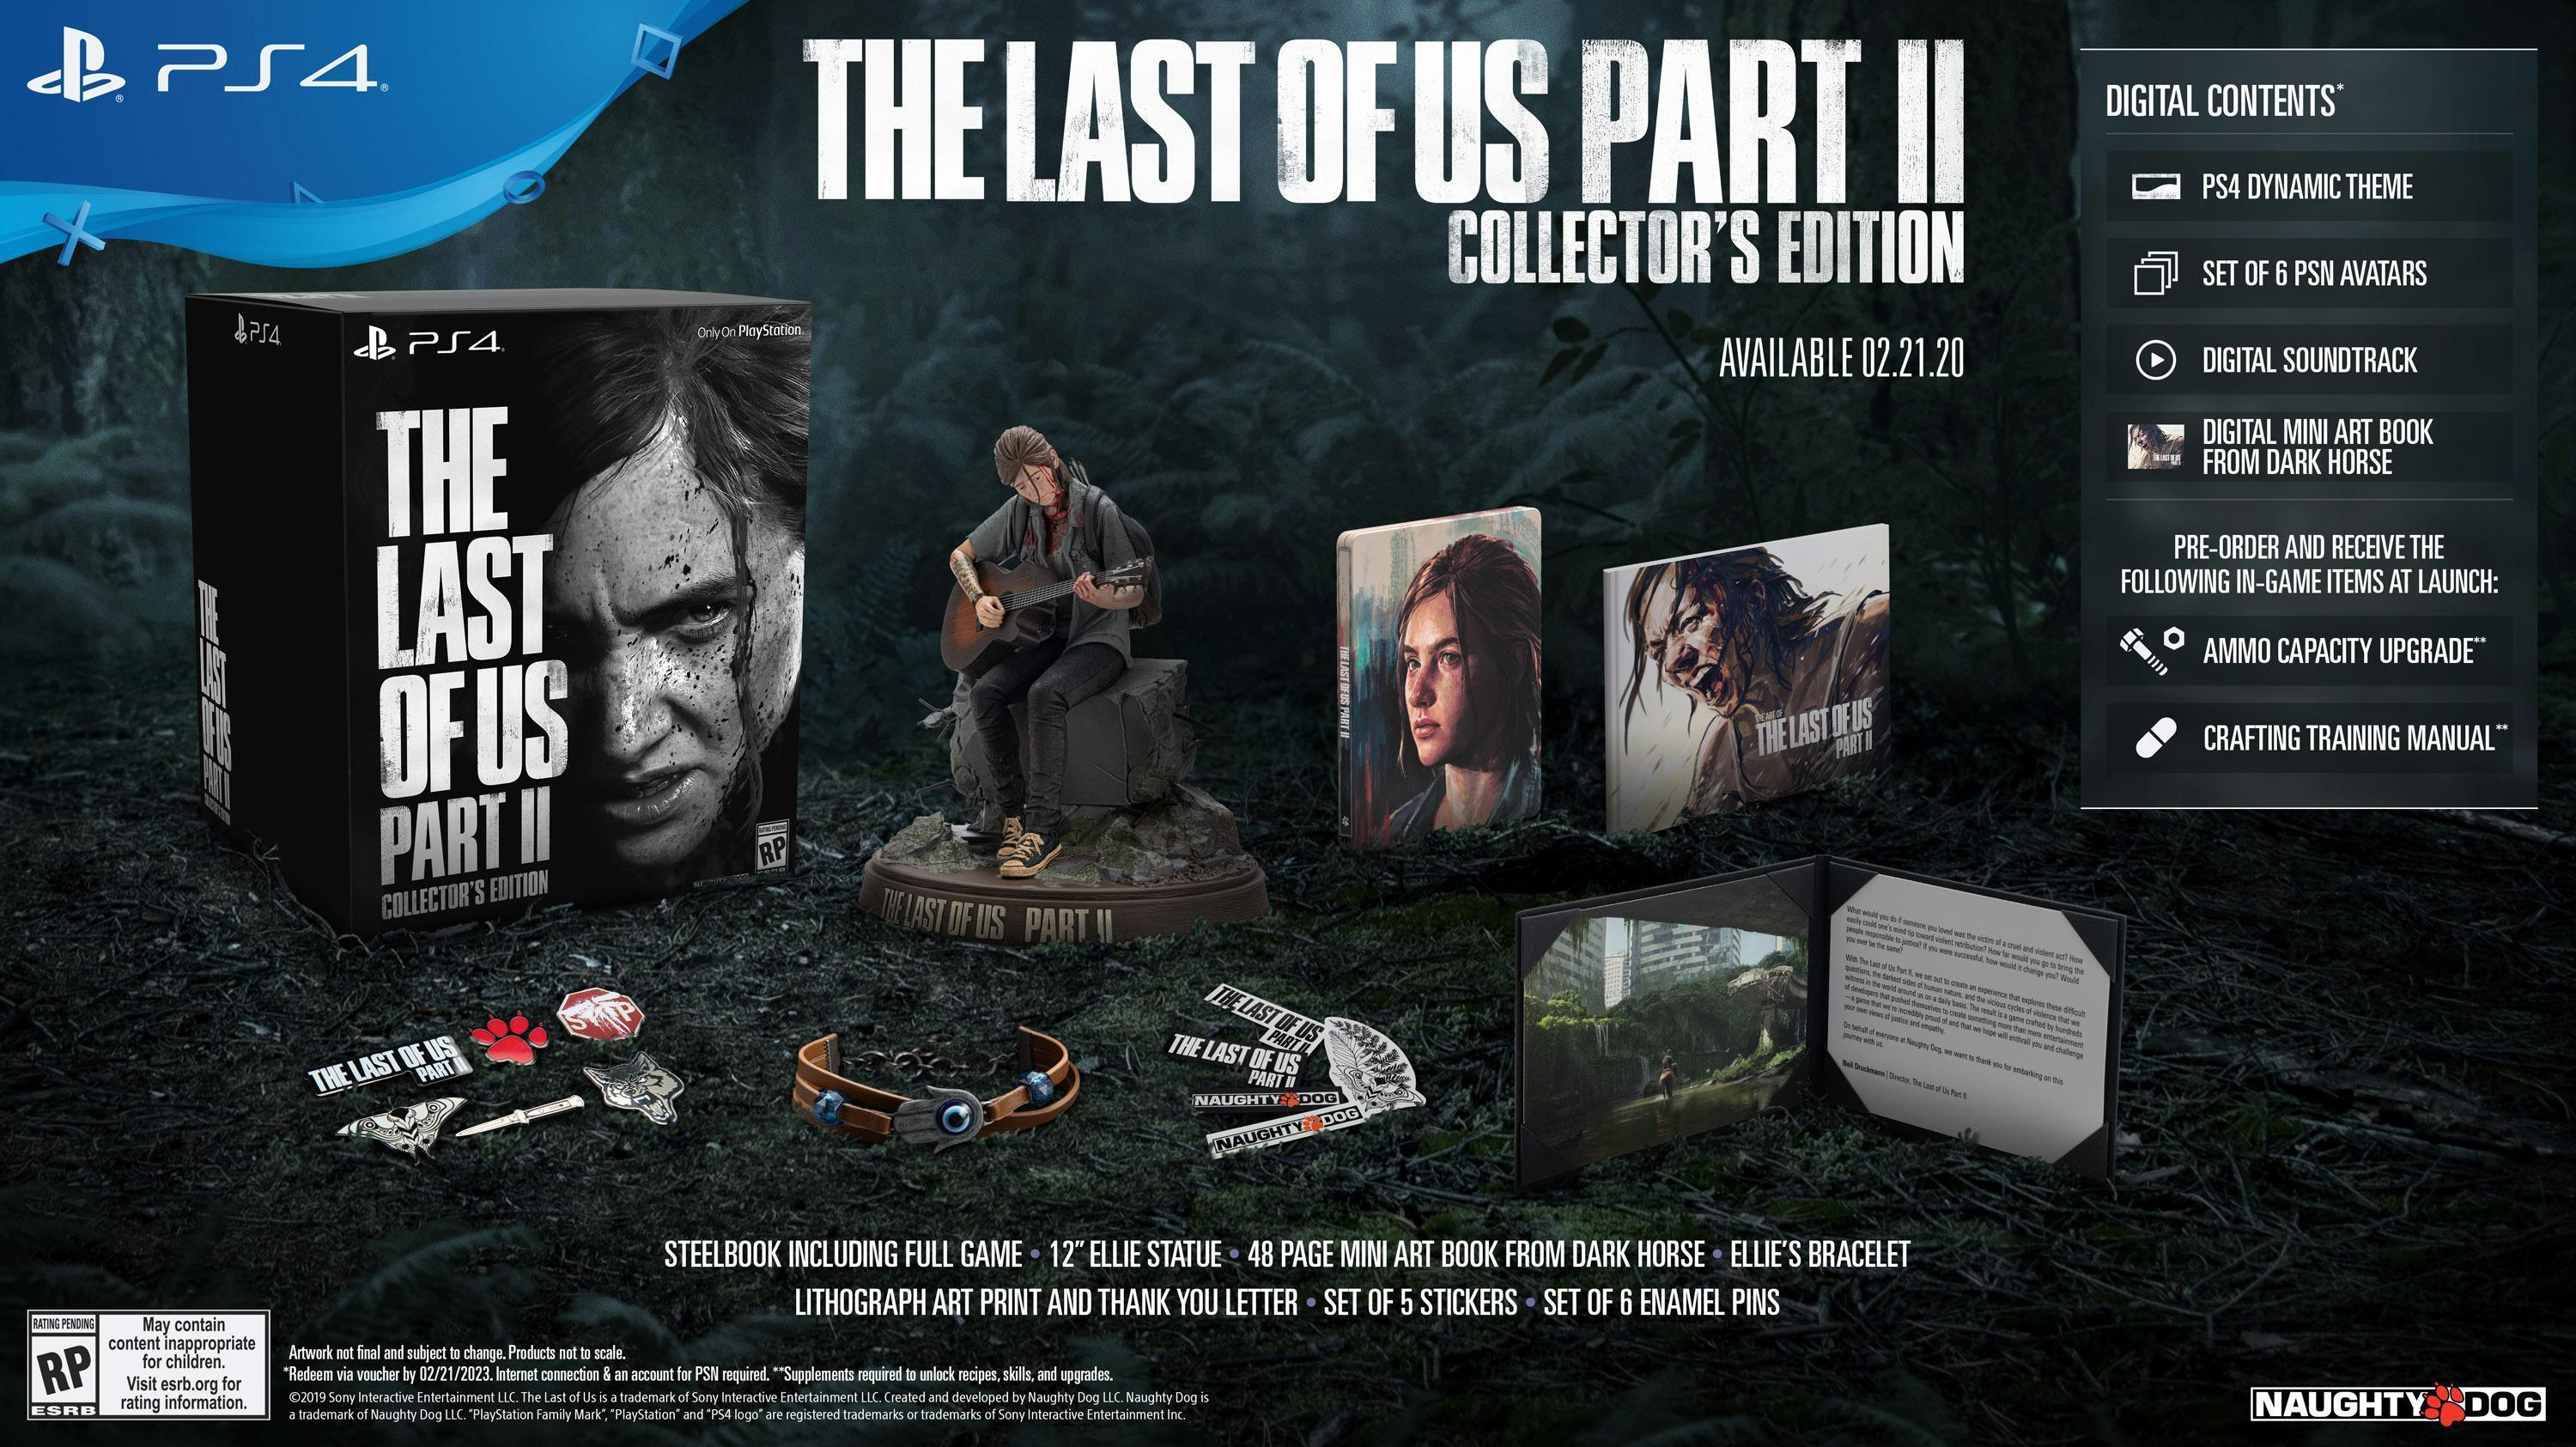 https://www.gamesatlas.com/images/the-last-of-us-2/the-last-of-us-2-collectors-edition.jpg